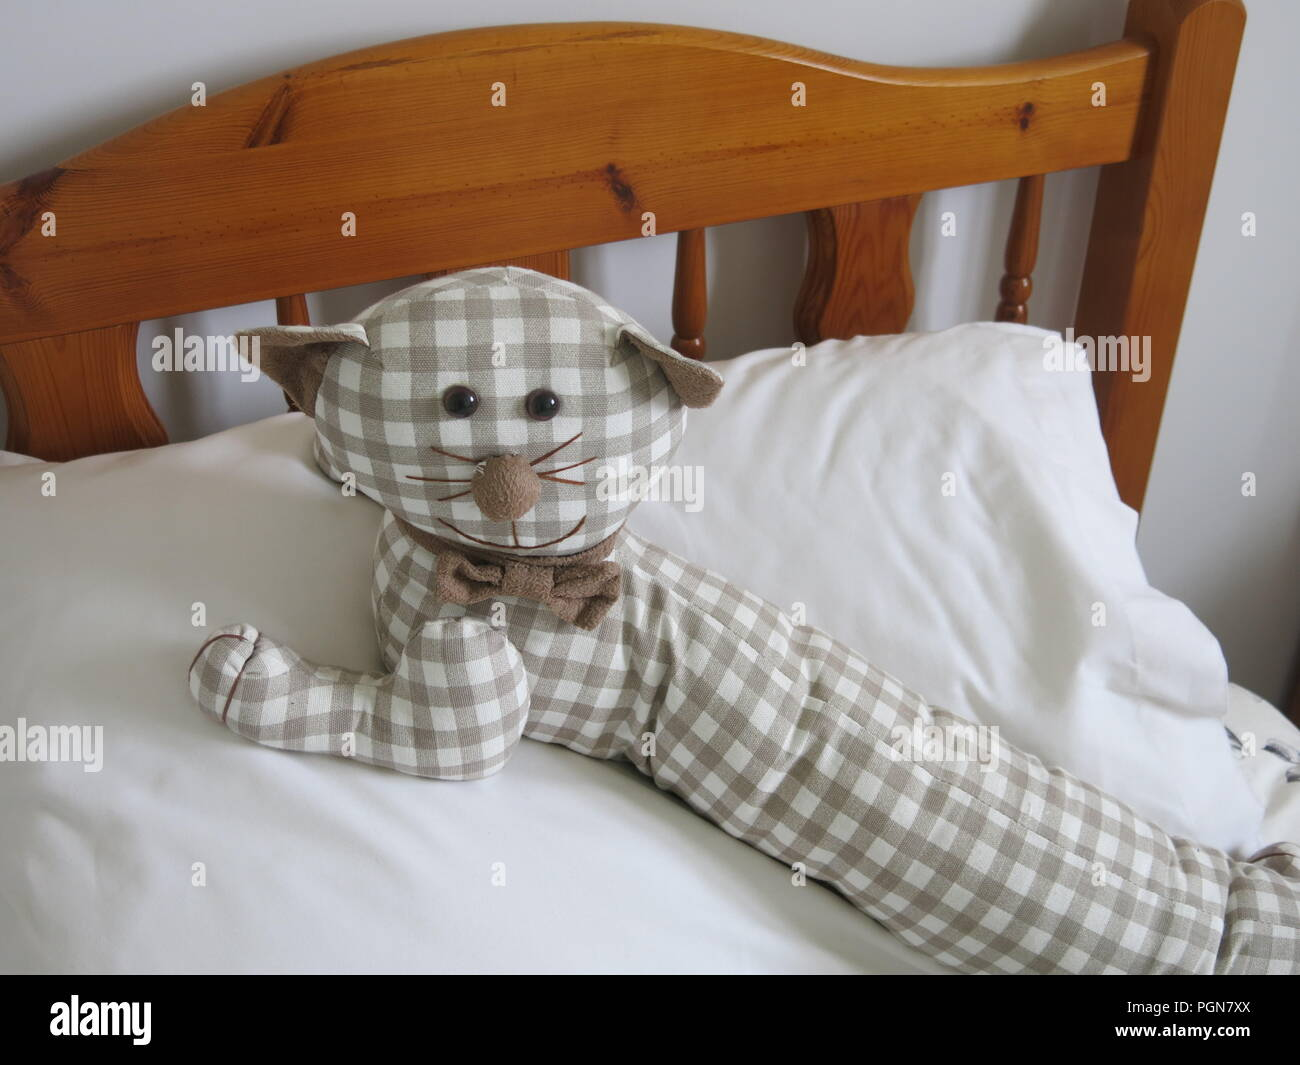 This Toy Stuffed Cat Made From Gingham Fabric Is Reclining On The